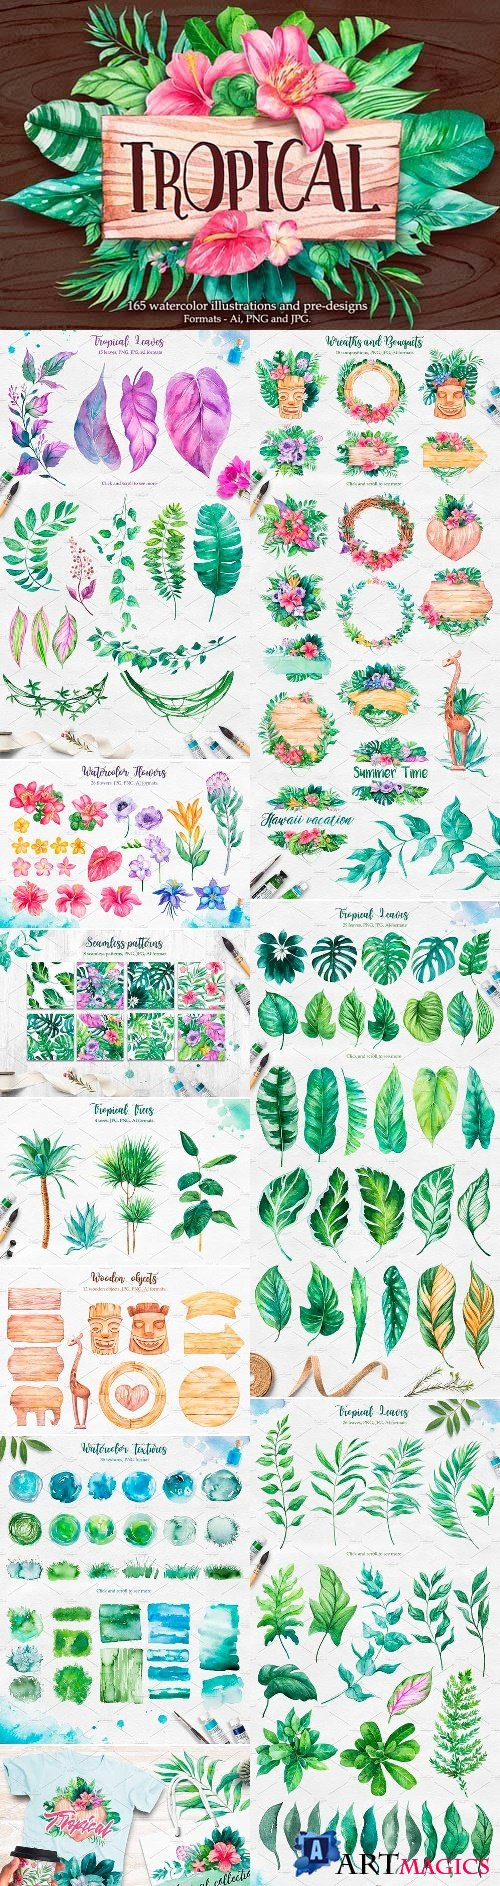 Tropical Watercolor illustrations - 2379405